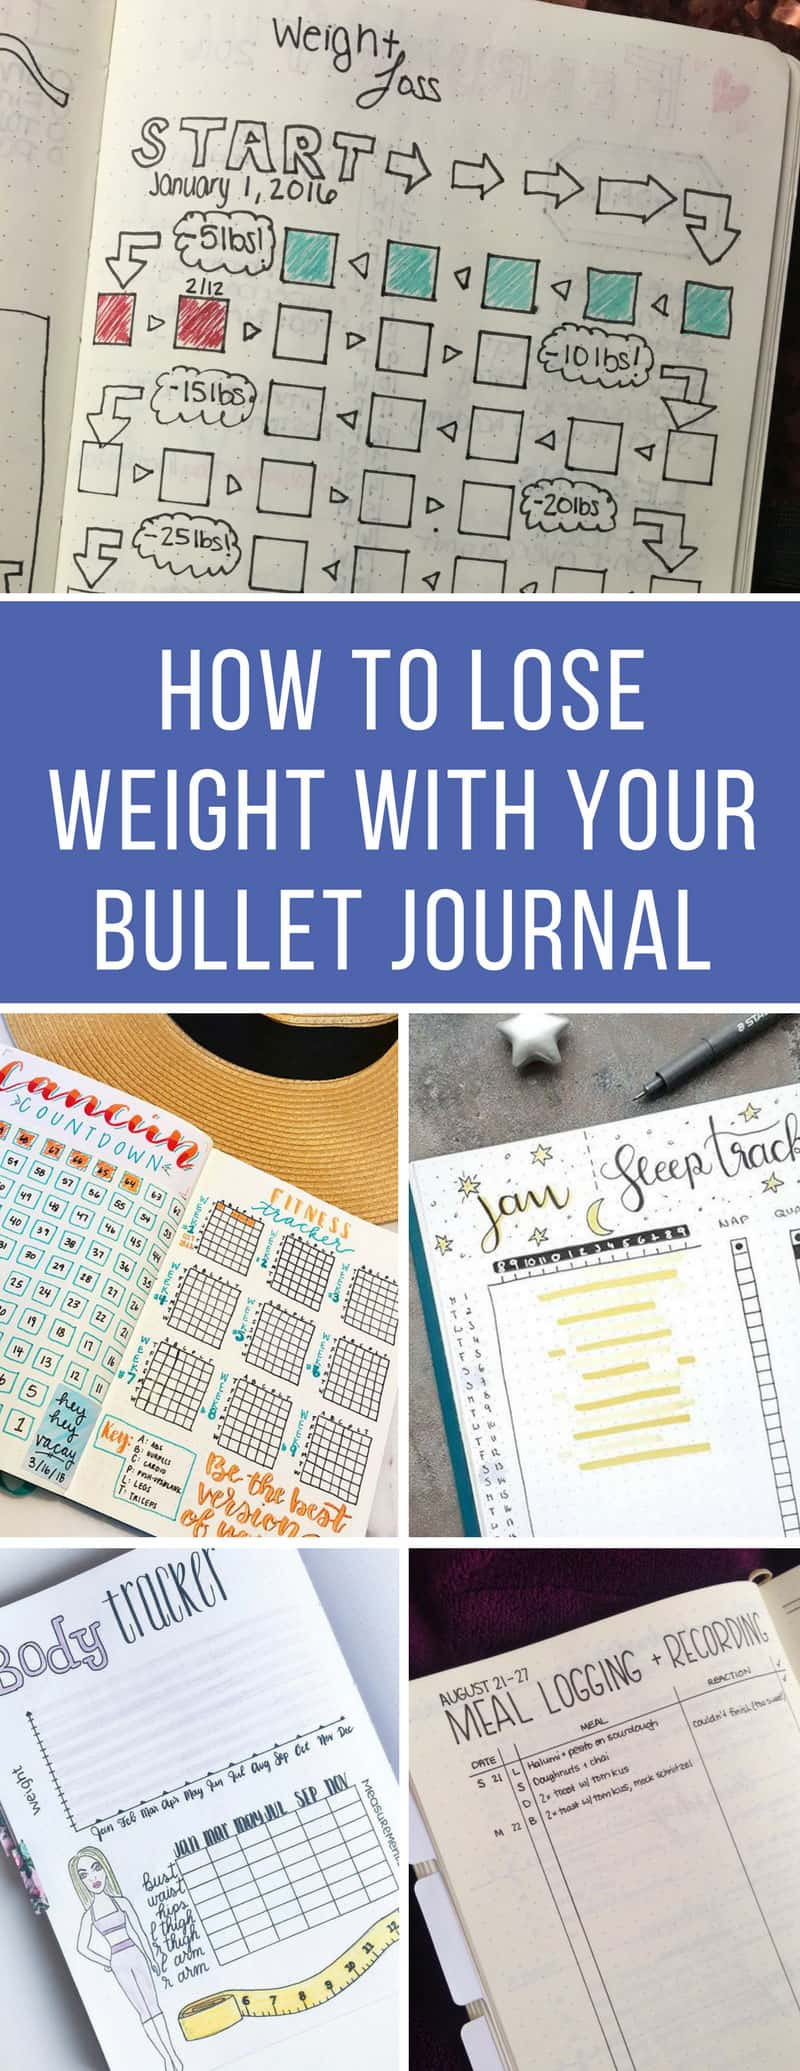 Bullet Journal Weight Loss Tracking - If you're trying to lose weight you'll love these tips from fitness guru Jillian Michaels that you can track with your Bullet Journal! #weightloss #bujo #bulletjournal